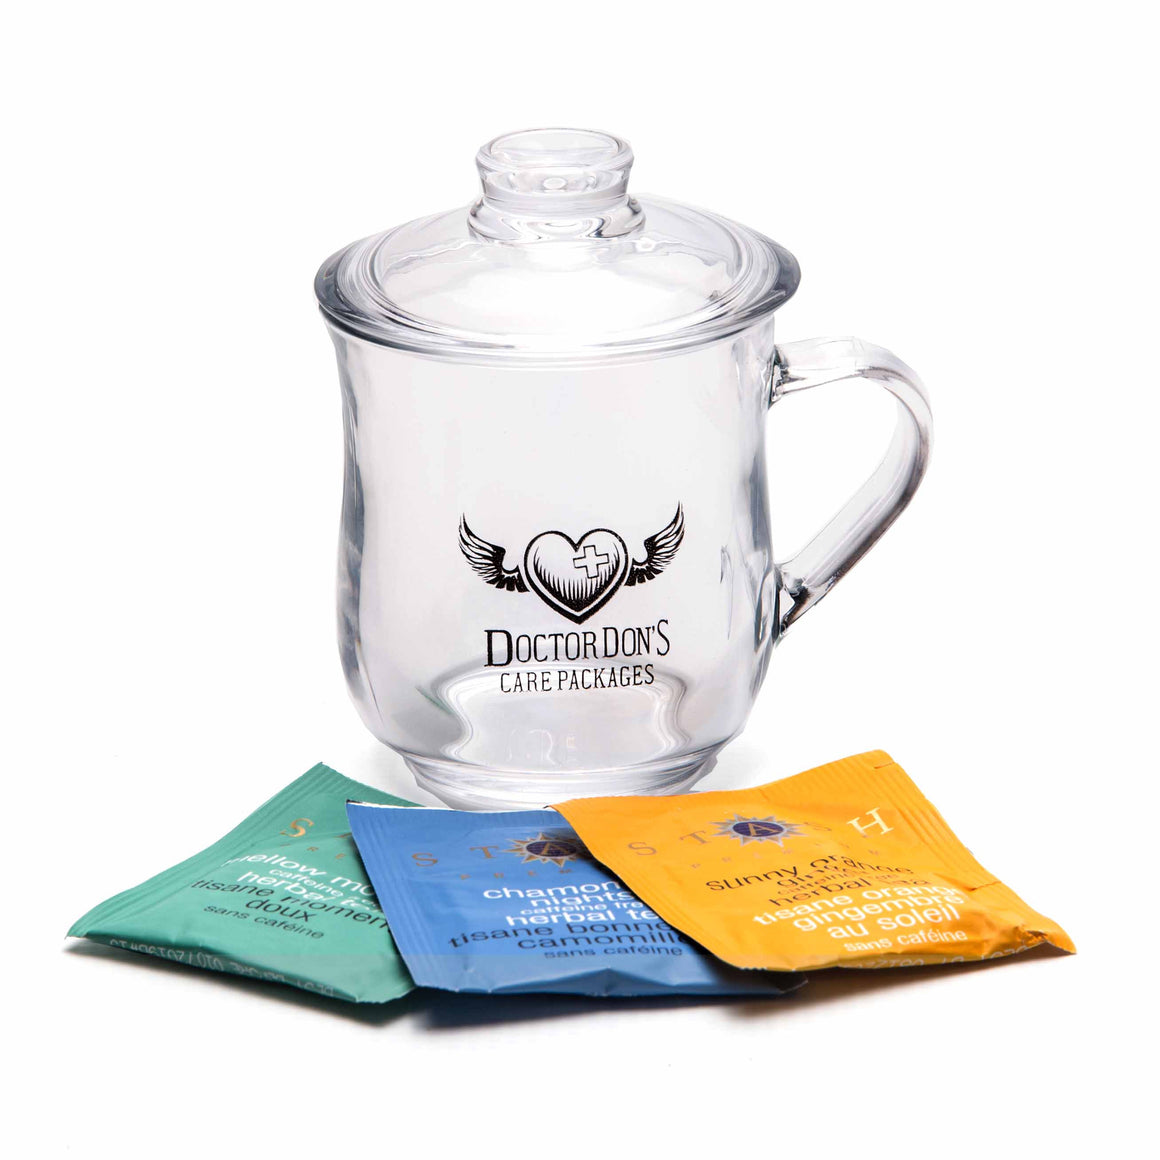 Classic Glass Tea Mug product image - included with Dr. Don's Care Packages Get Well Soon Care Package.